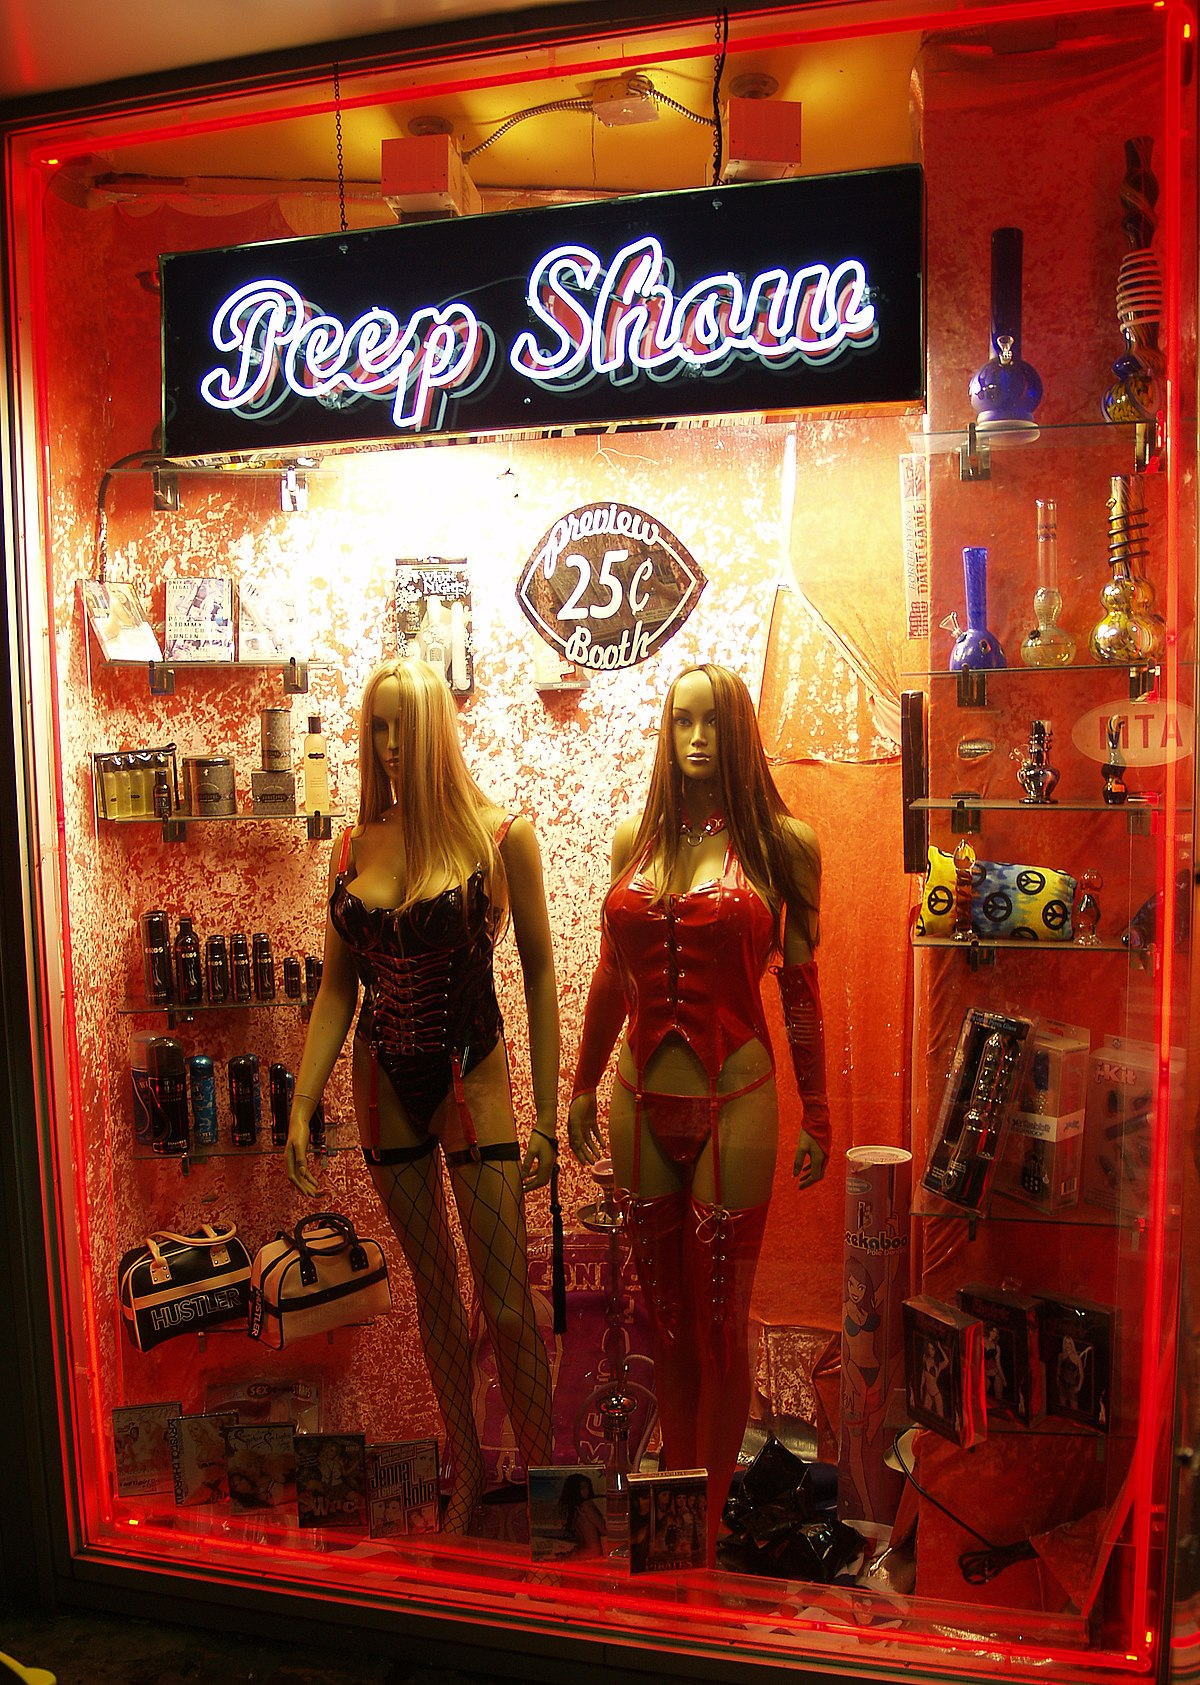 South san francisco porn shop